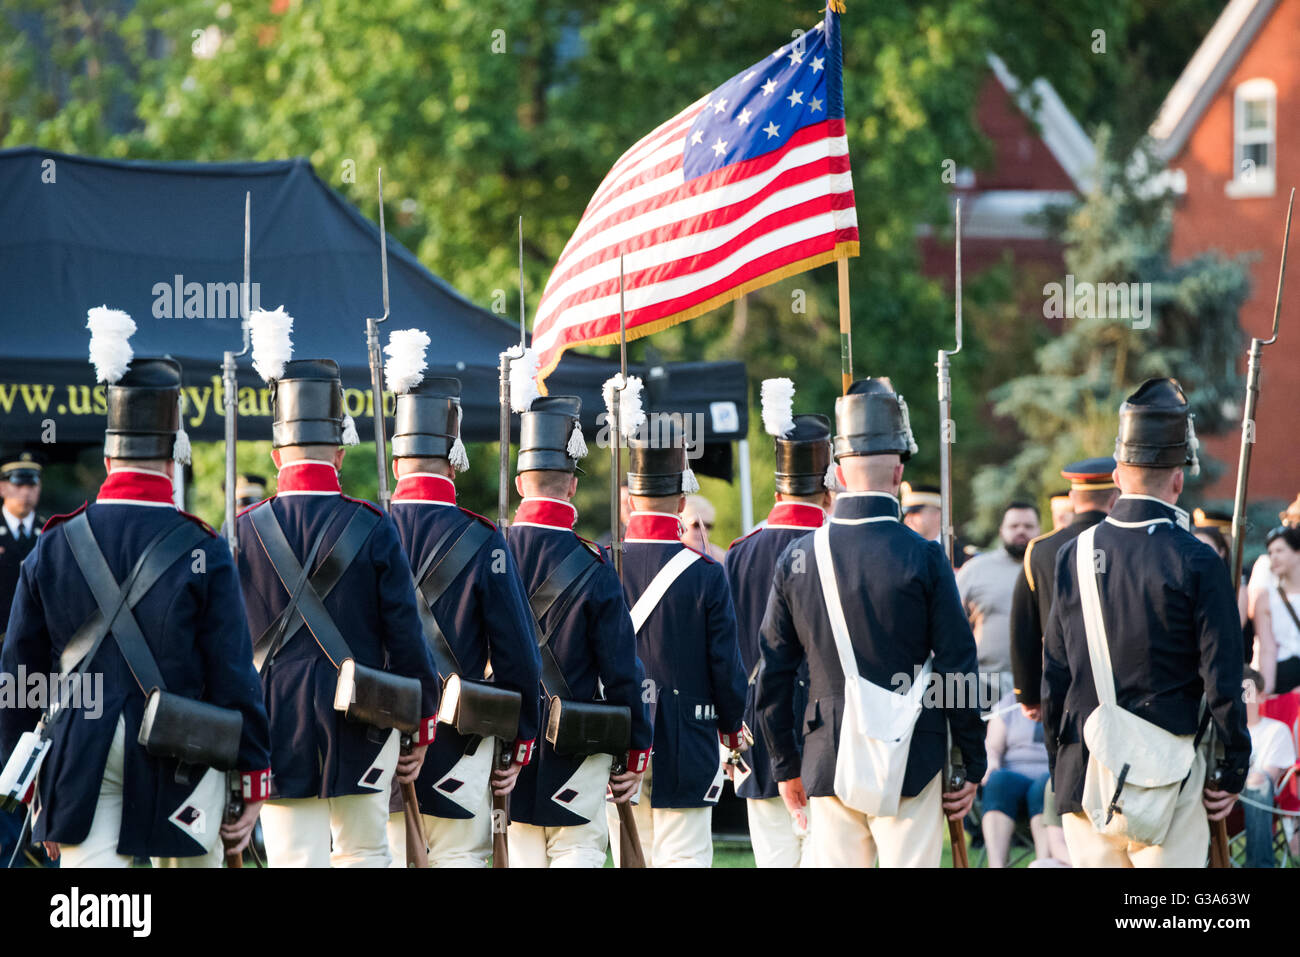 ARLINGTON, Virginia, USA - The U.S. Army's Twilight Tattoo is held on Tuesday evenings in the summer at Joint - Stock Image